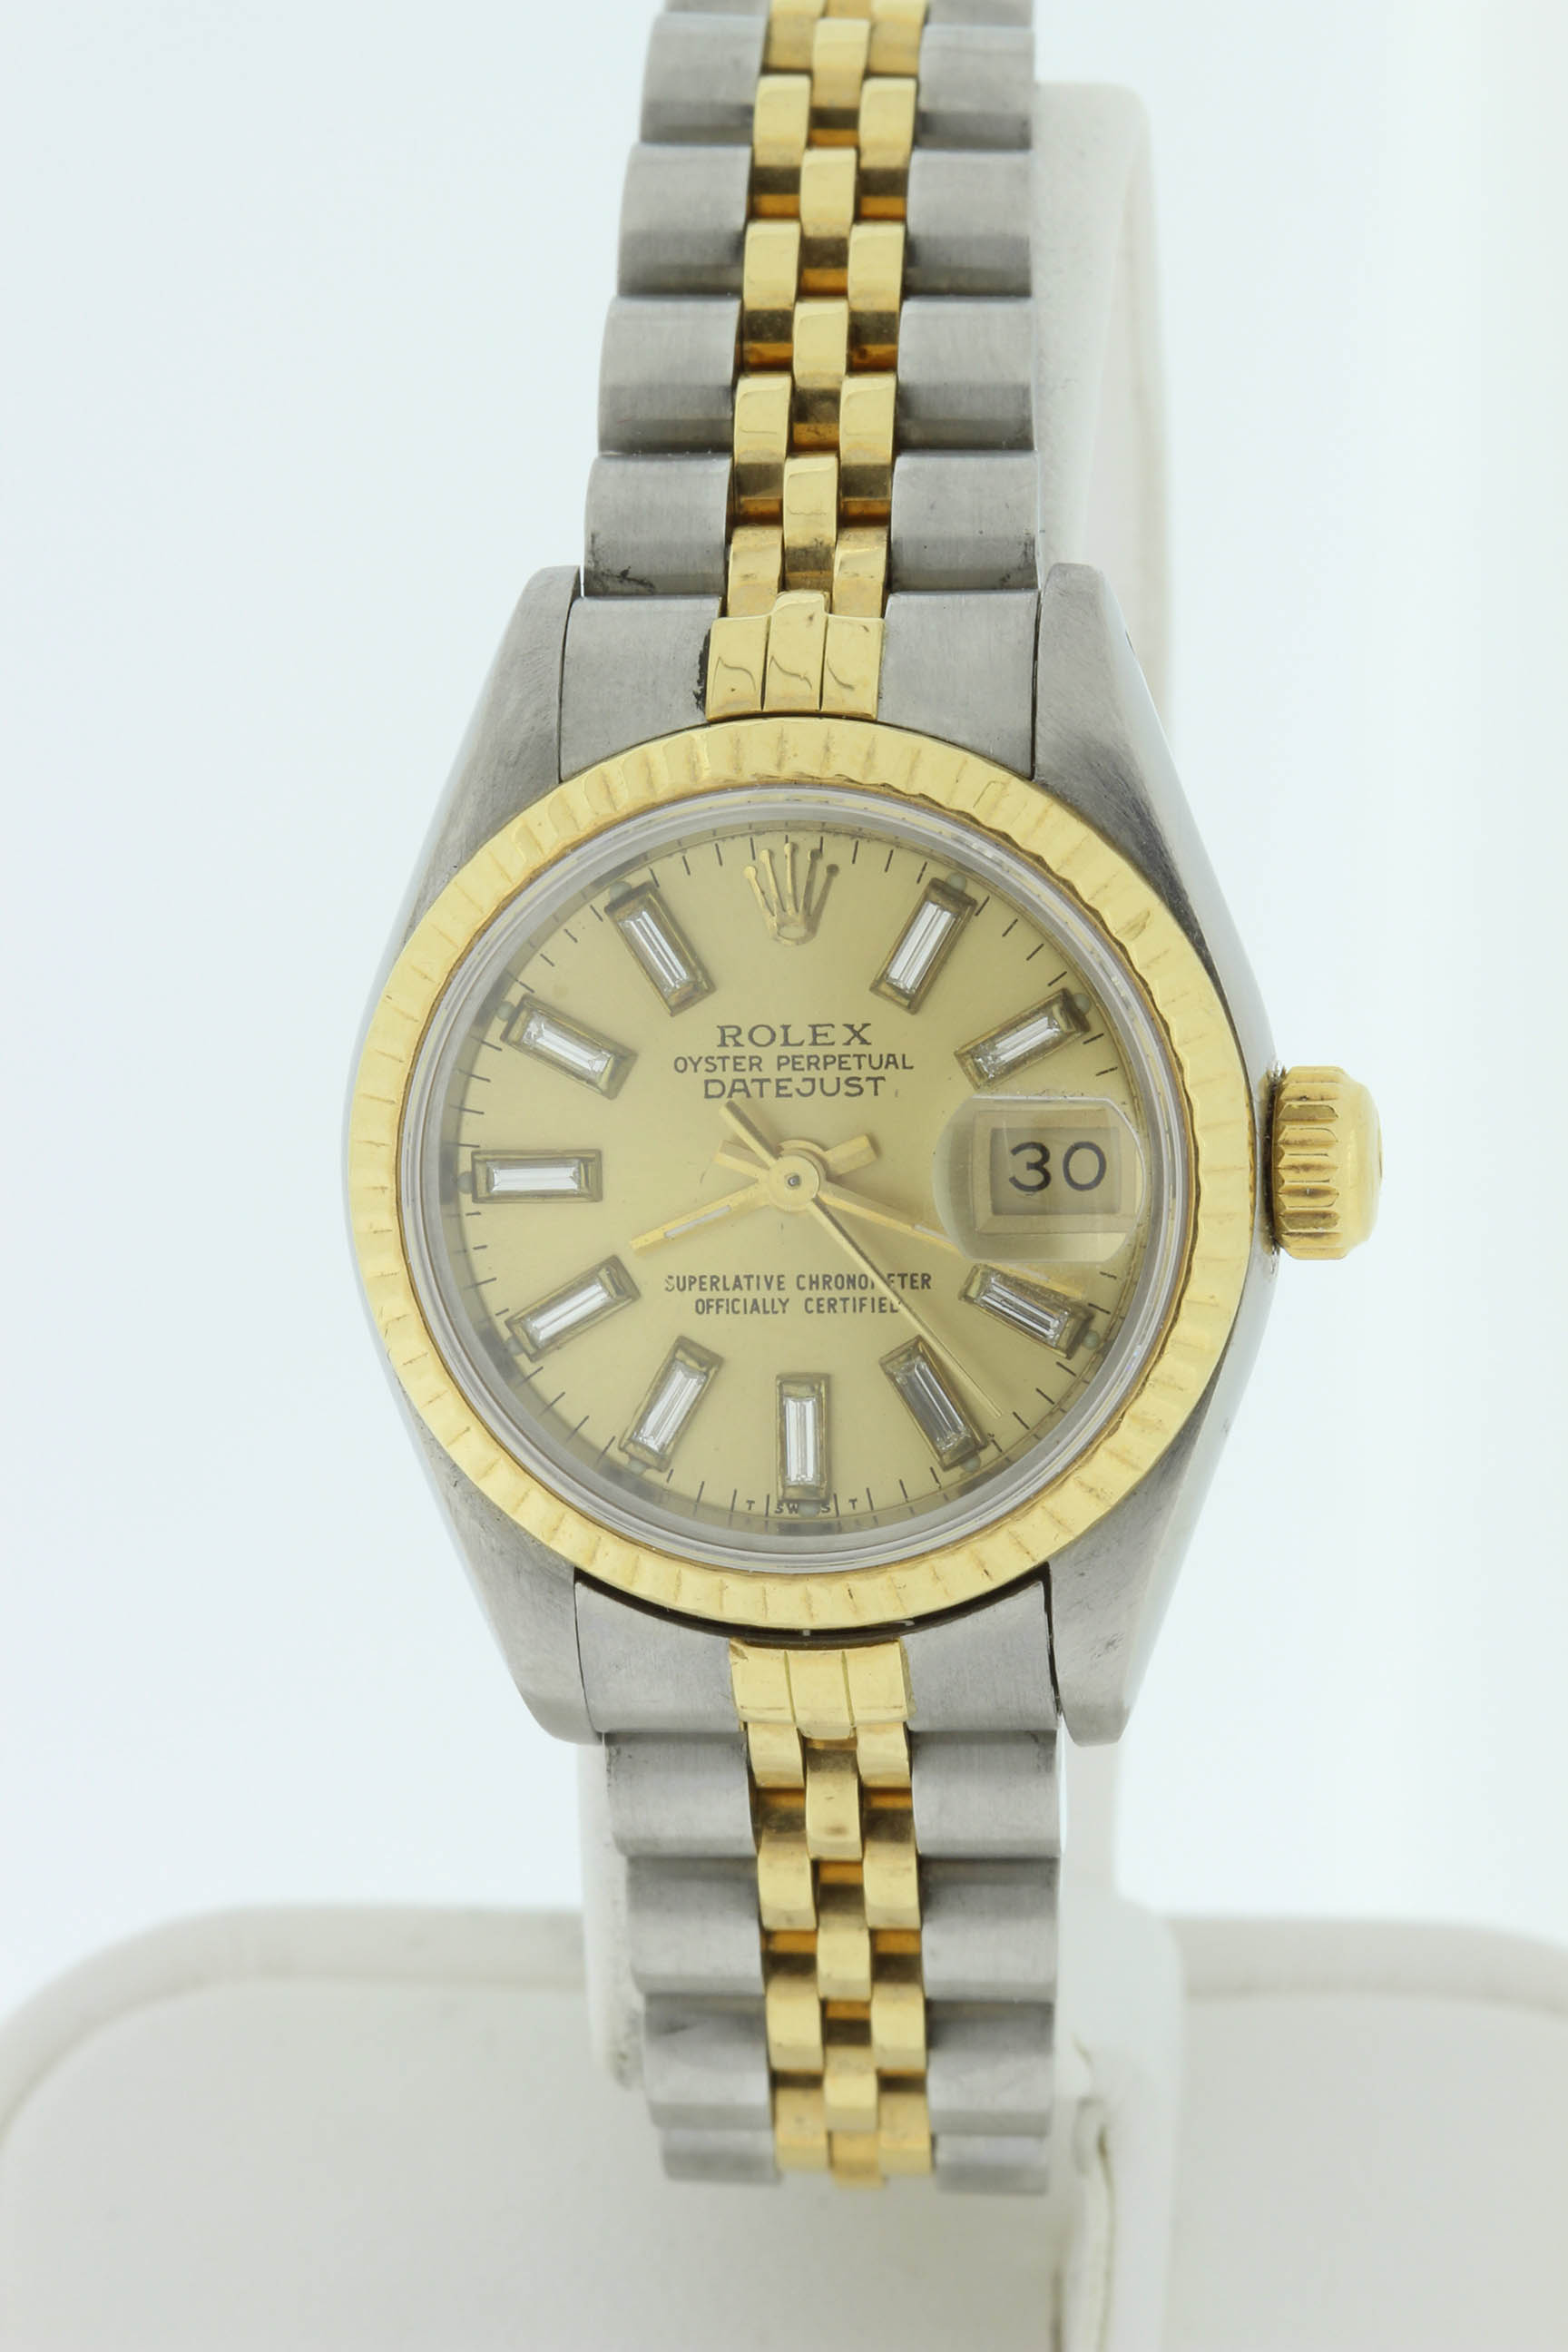 Ladies 18k and Stainless DateJust with Baguette Diamond Dial $4000